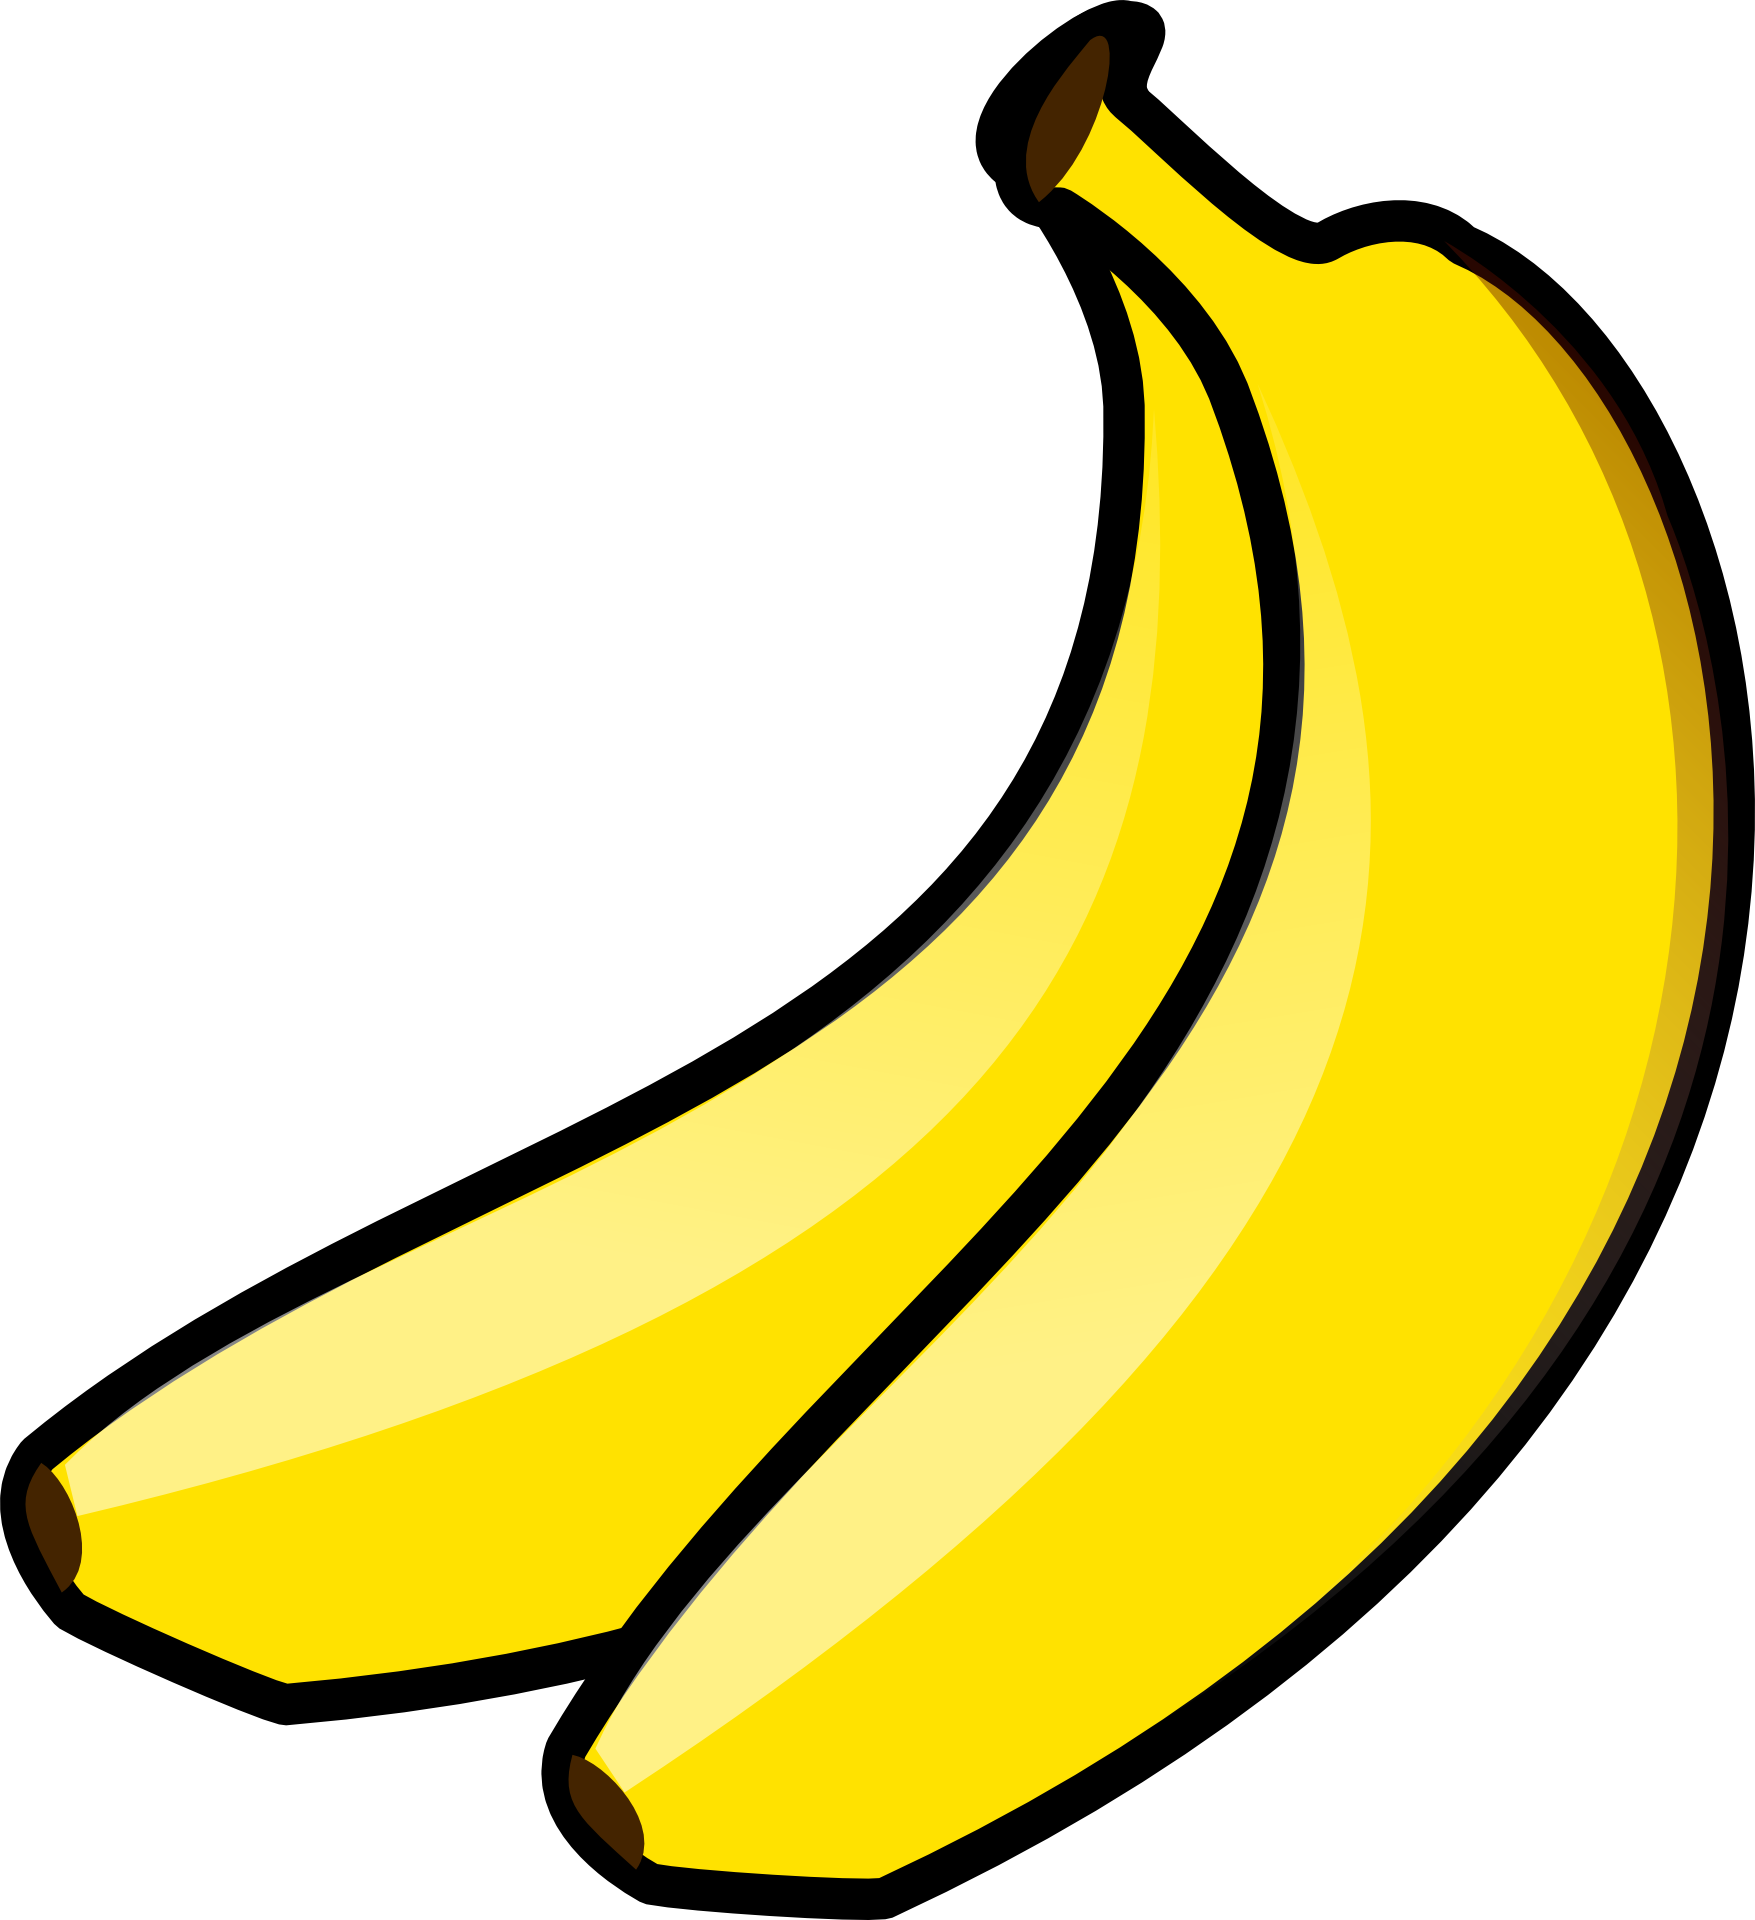 Clipart,two juicy bananas free image.